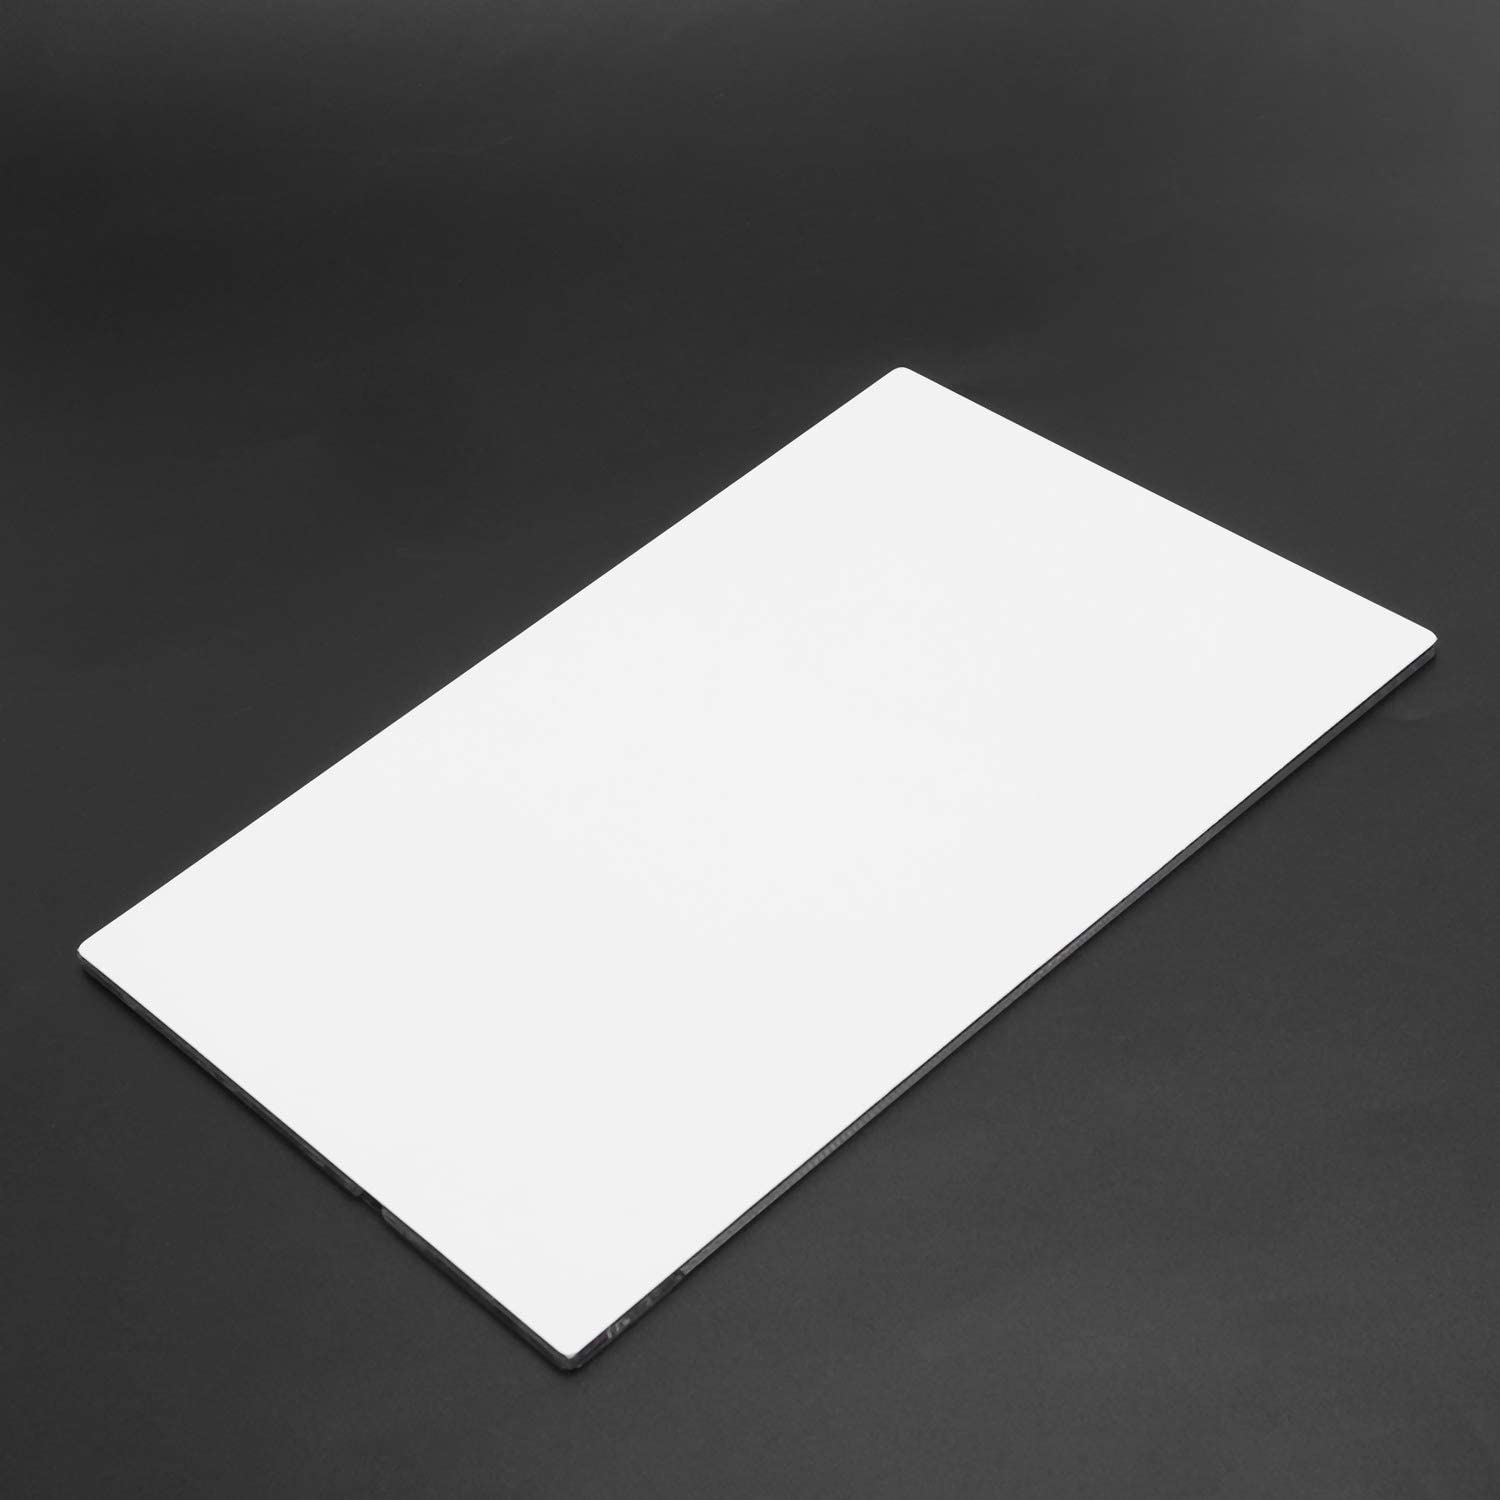 Noblik Three Level Dimmable Led Light Pad,Tablet,Tools,Diamond Painting Accessories,Diamond Embroidery Eye A5 Size